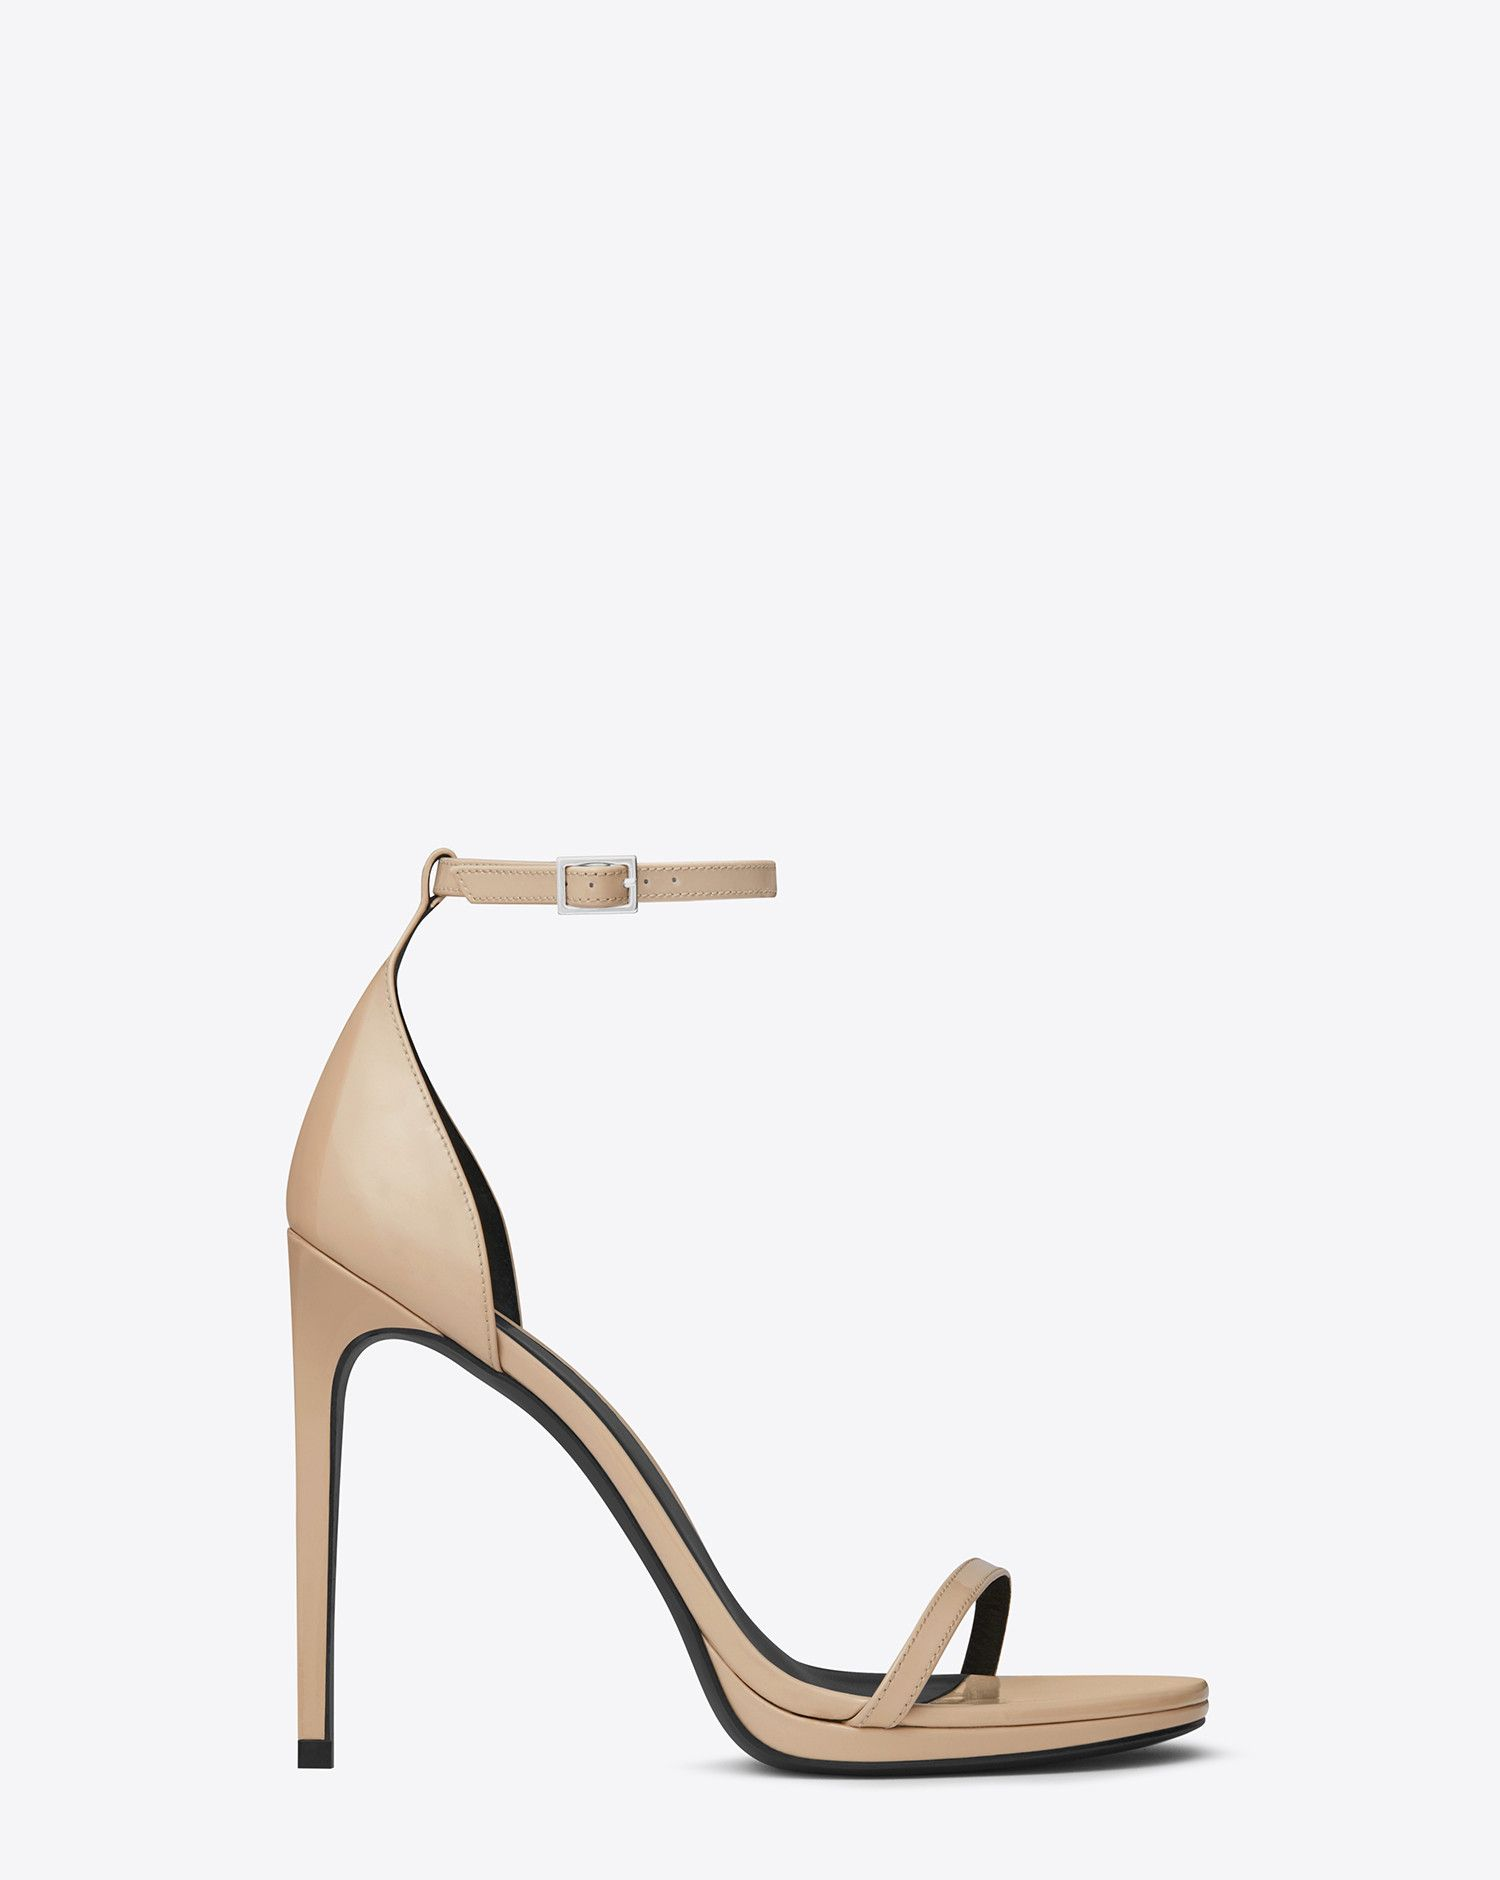 aba1fcf3dad Saint Laurent CLASSIC JANE ANKLE STRAP 105 SANDAL IN POWDER PATENT LEATHER